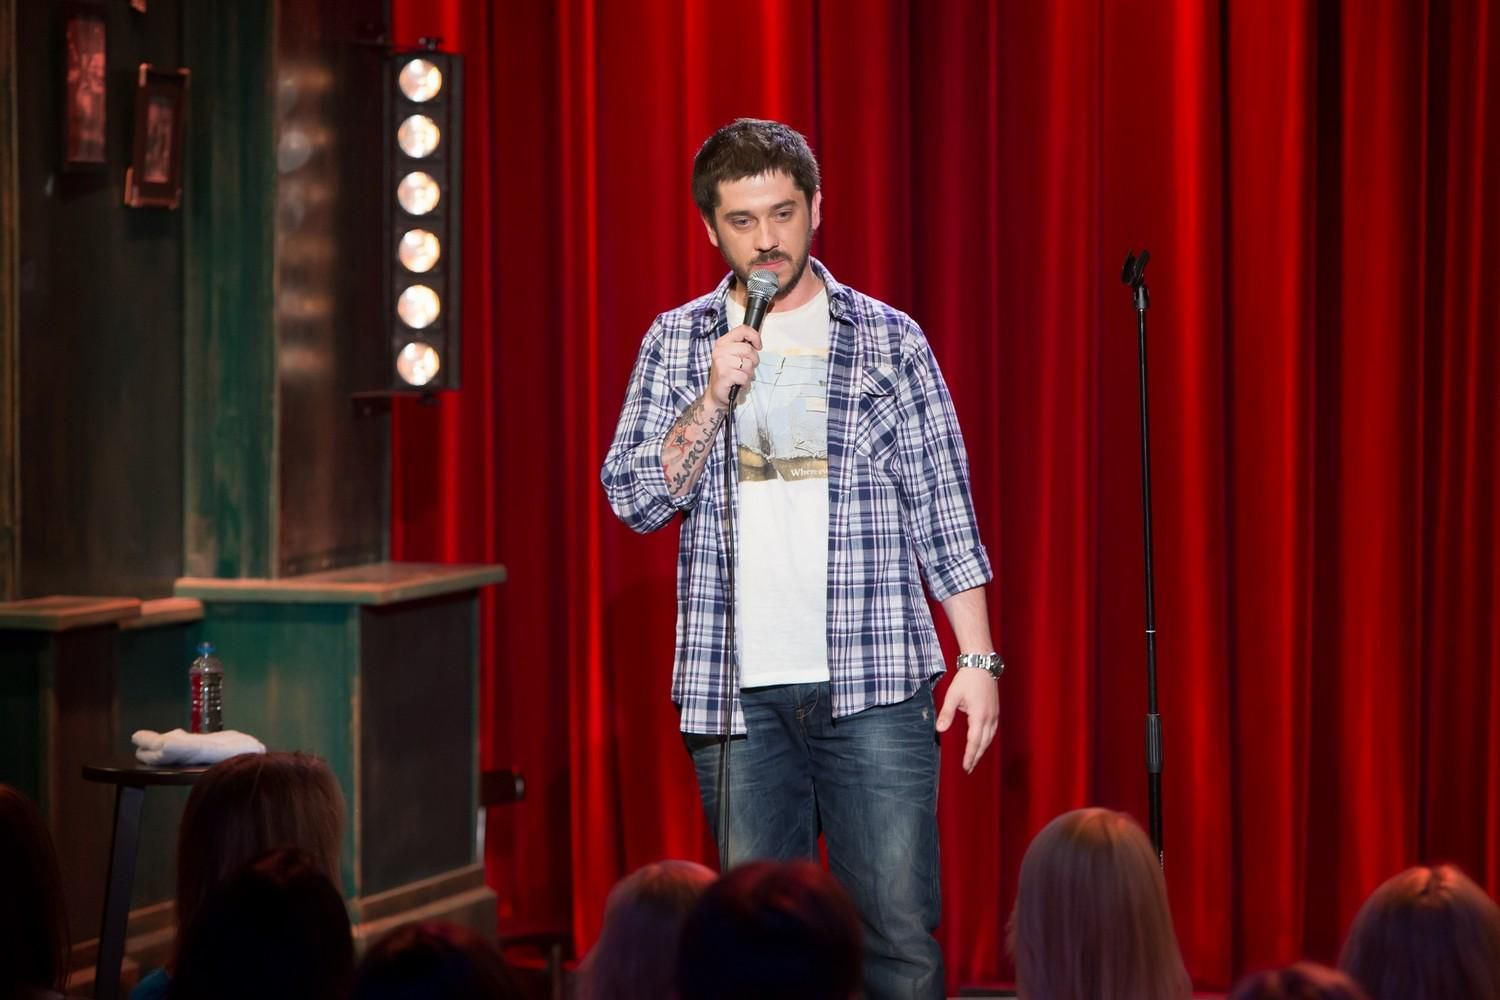 negative effect of stand up comedy shows Stand-up comedy can give social critique and instigate  the sketch shows early signs of provoking the  america needs its comedians to start conversations.